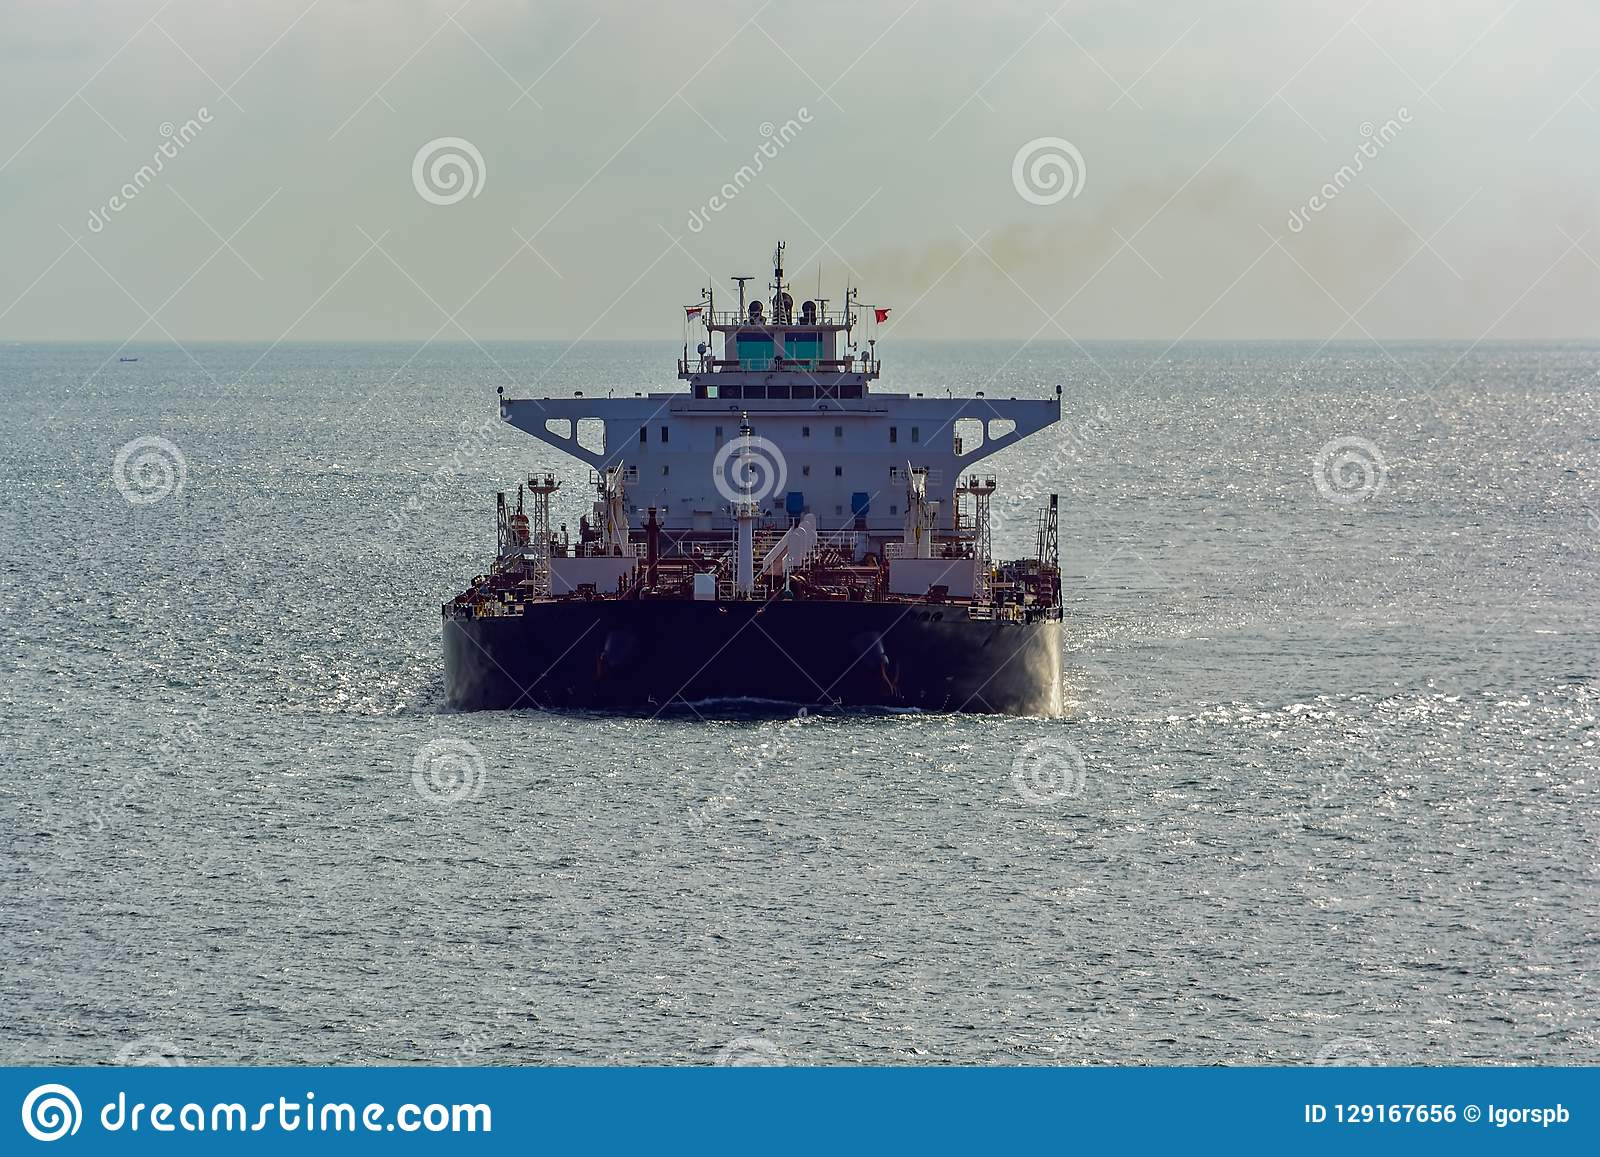 Oil Tanker In Singapore Strait  Stock Photo - Image of business